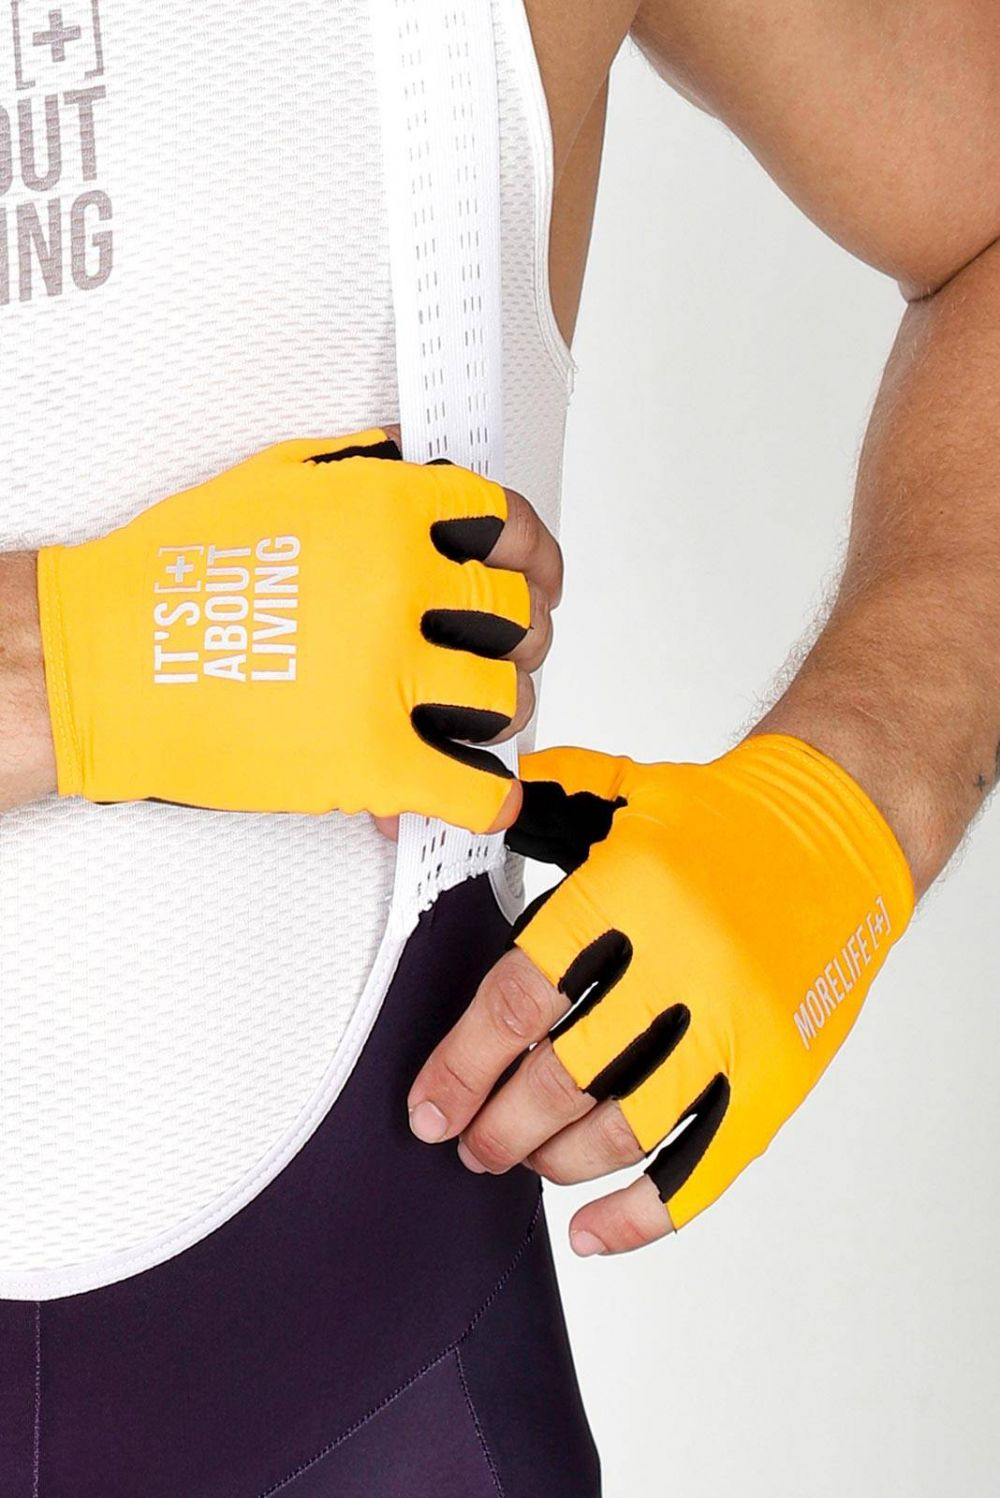 LEMON YELLOW GLOVES